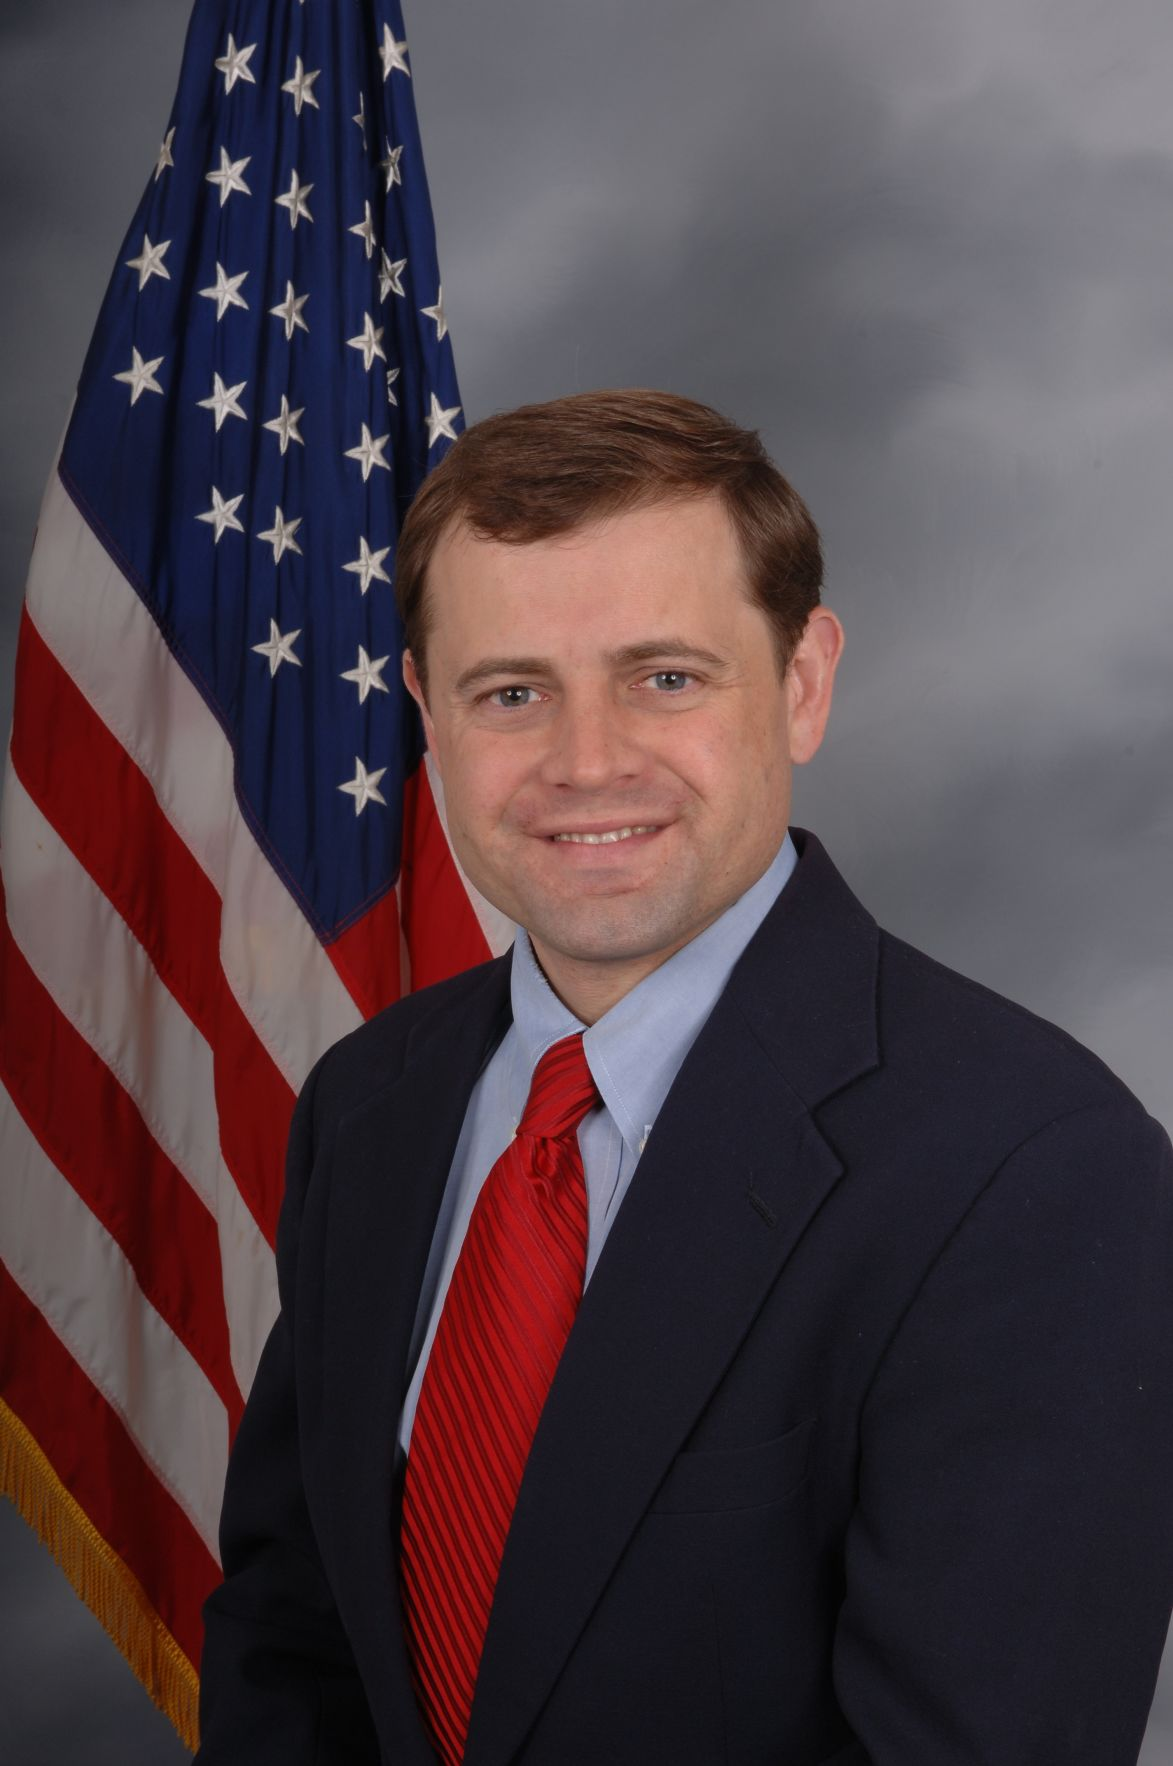 With key Bernie Sanders endorsement Tom Perriello hits campaign